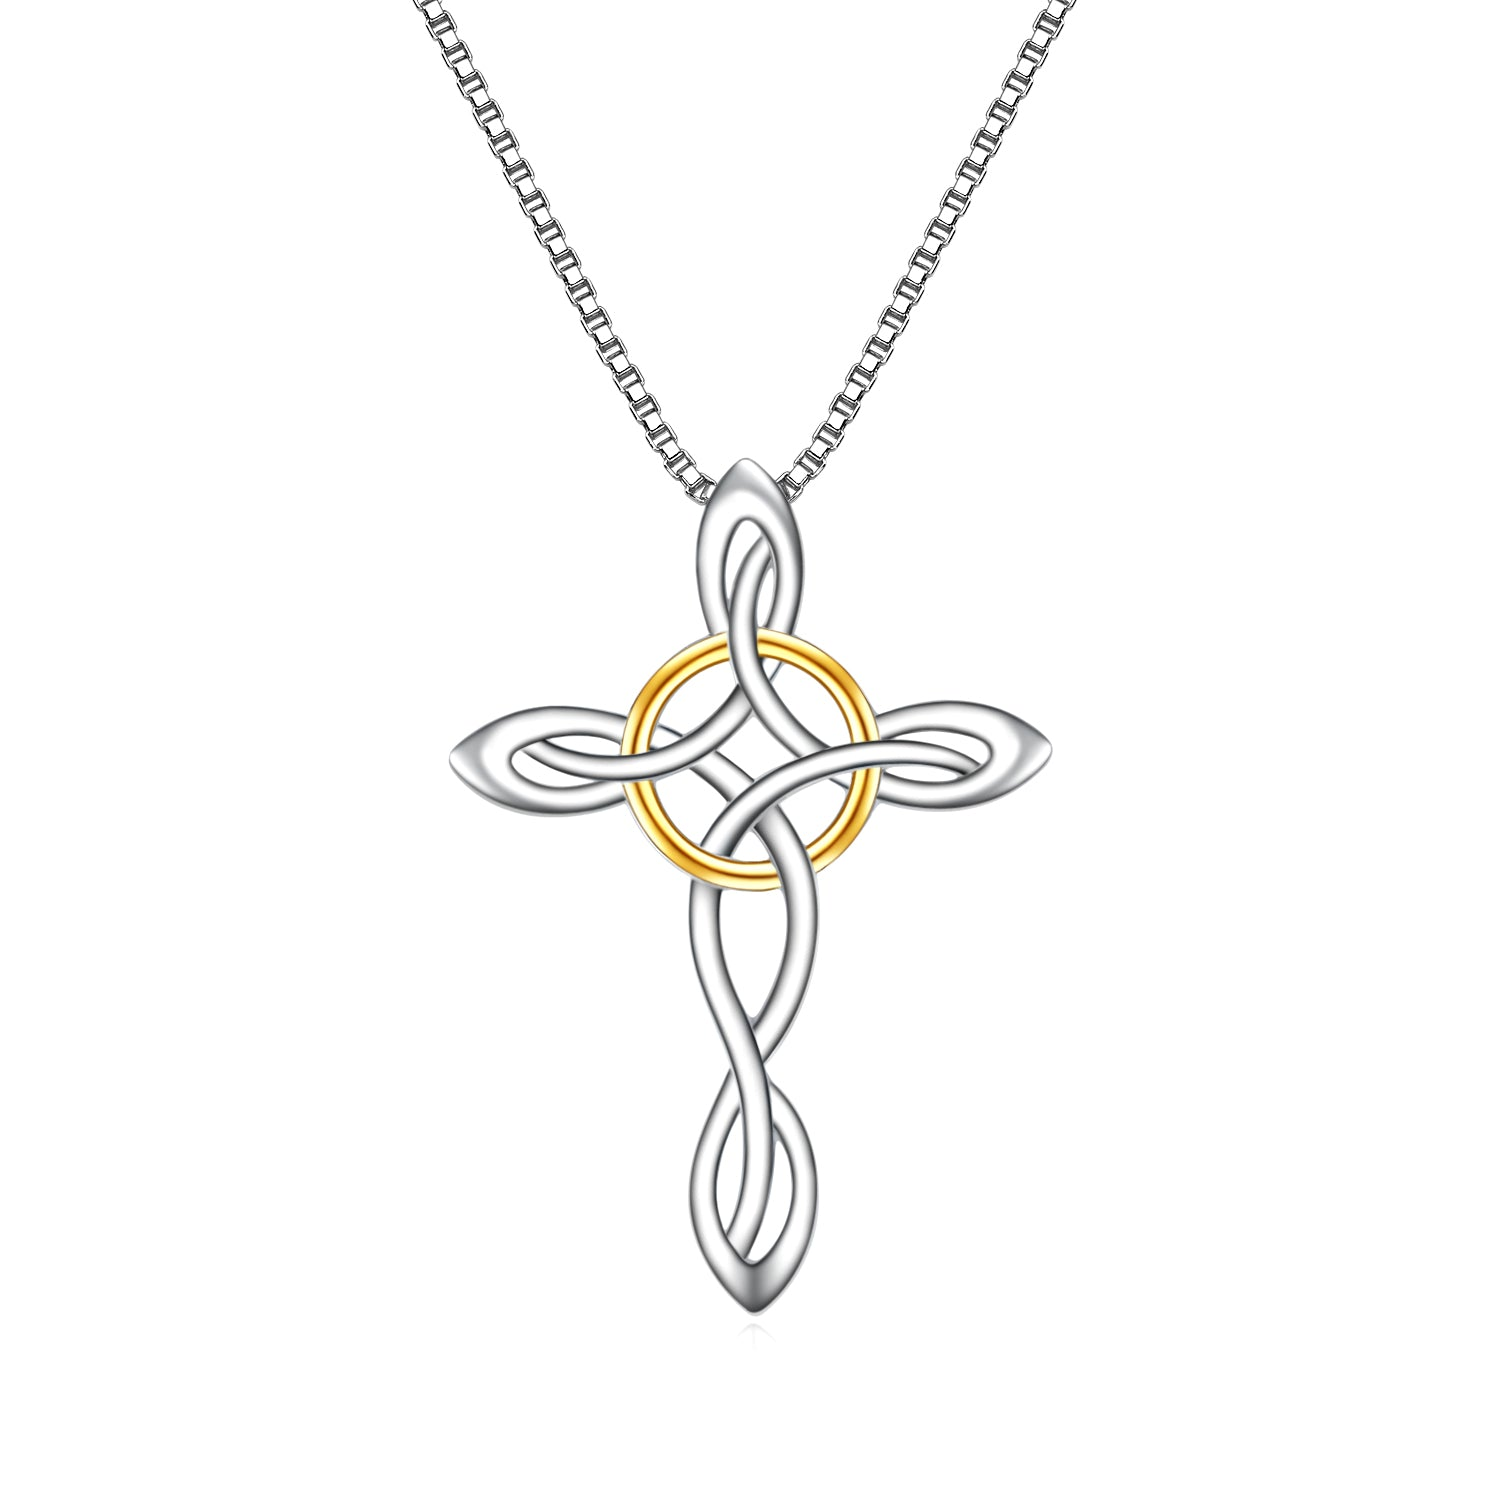 Celtic Knot Cross Necklace 925 Sterling Silver Jewelry Cross Pendant